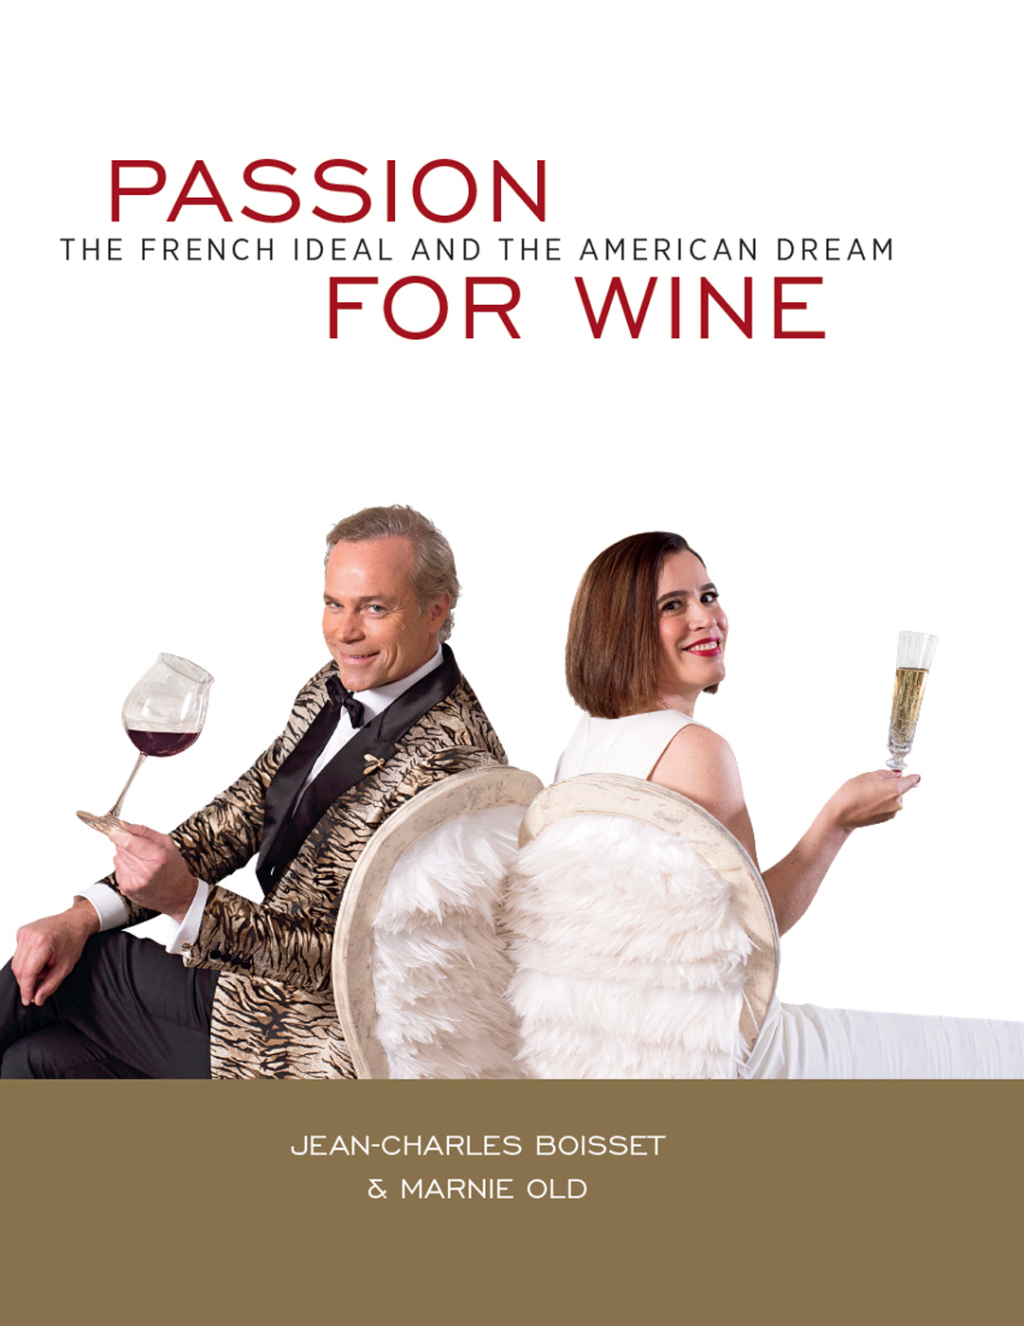 By Jean-Charles Boisset PRINTISBN: 9780871976468 E-TEXT ISBN: 9780871976468 Edition: 0